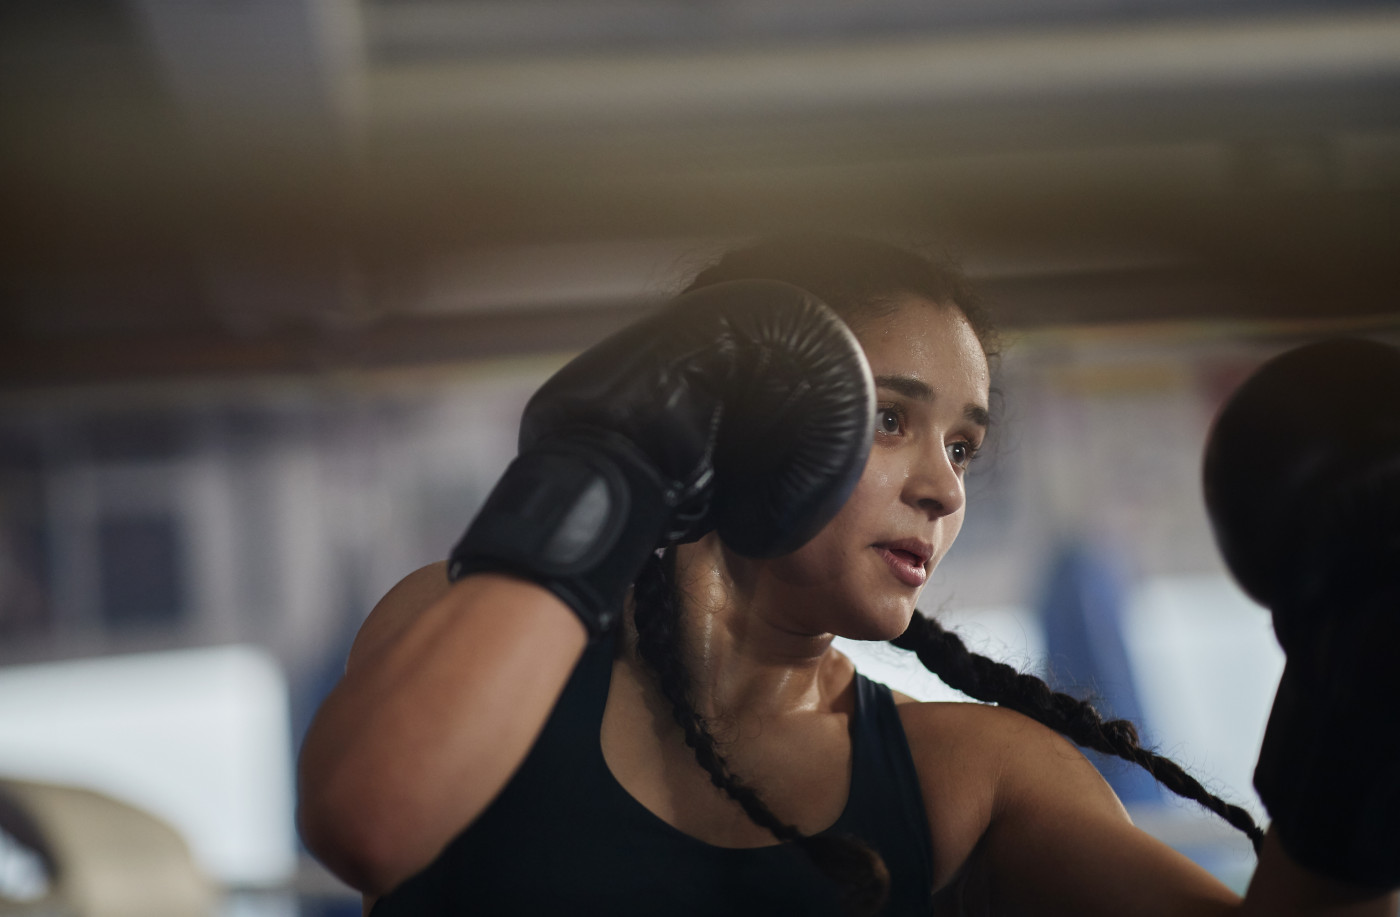 Women In Sport: Boxing